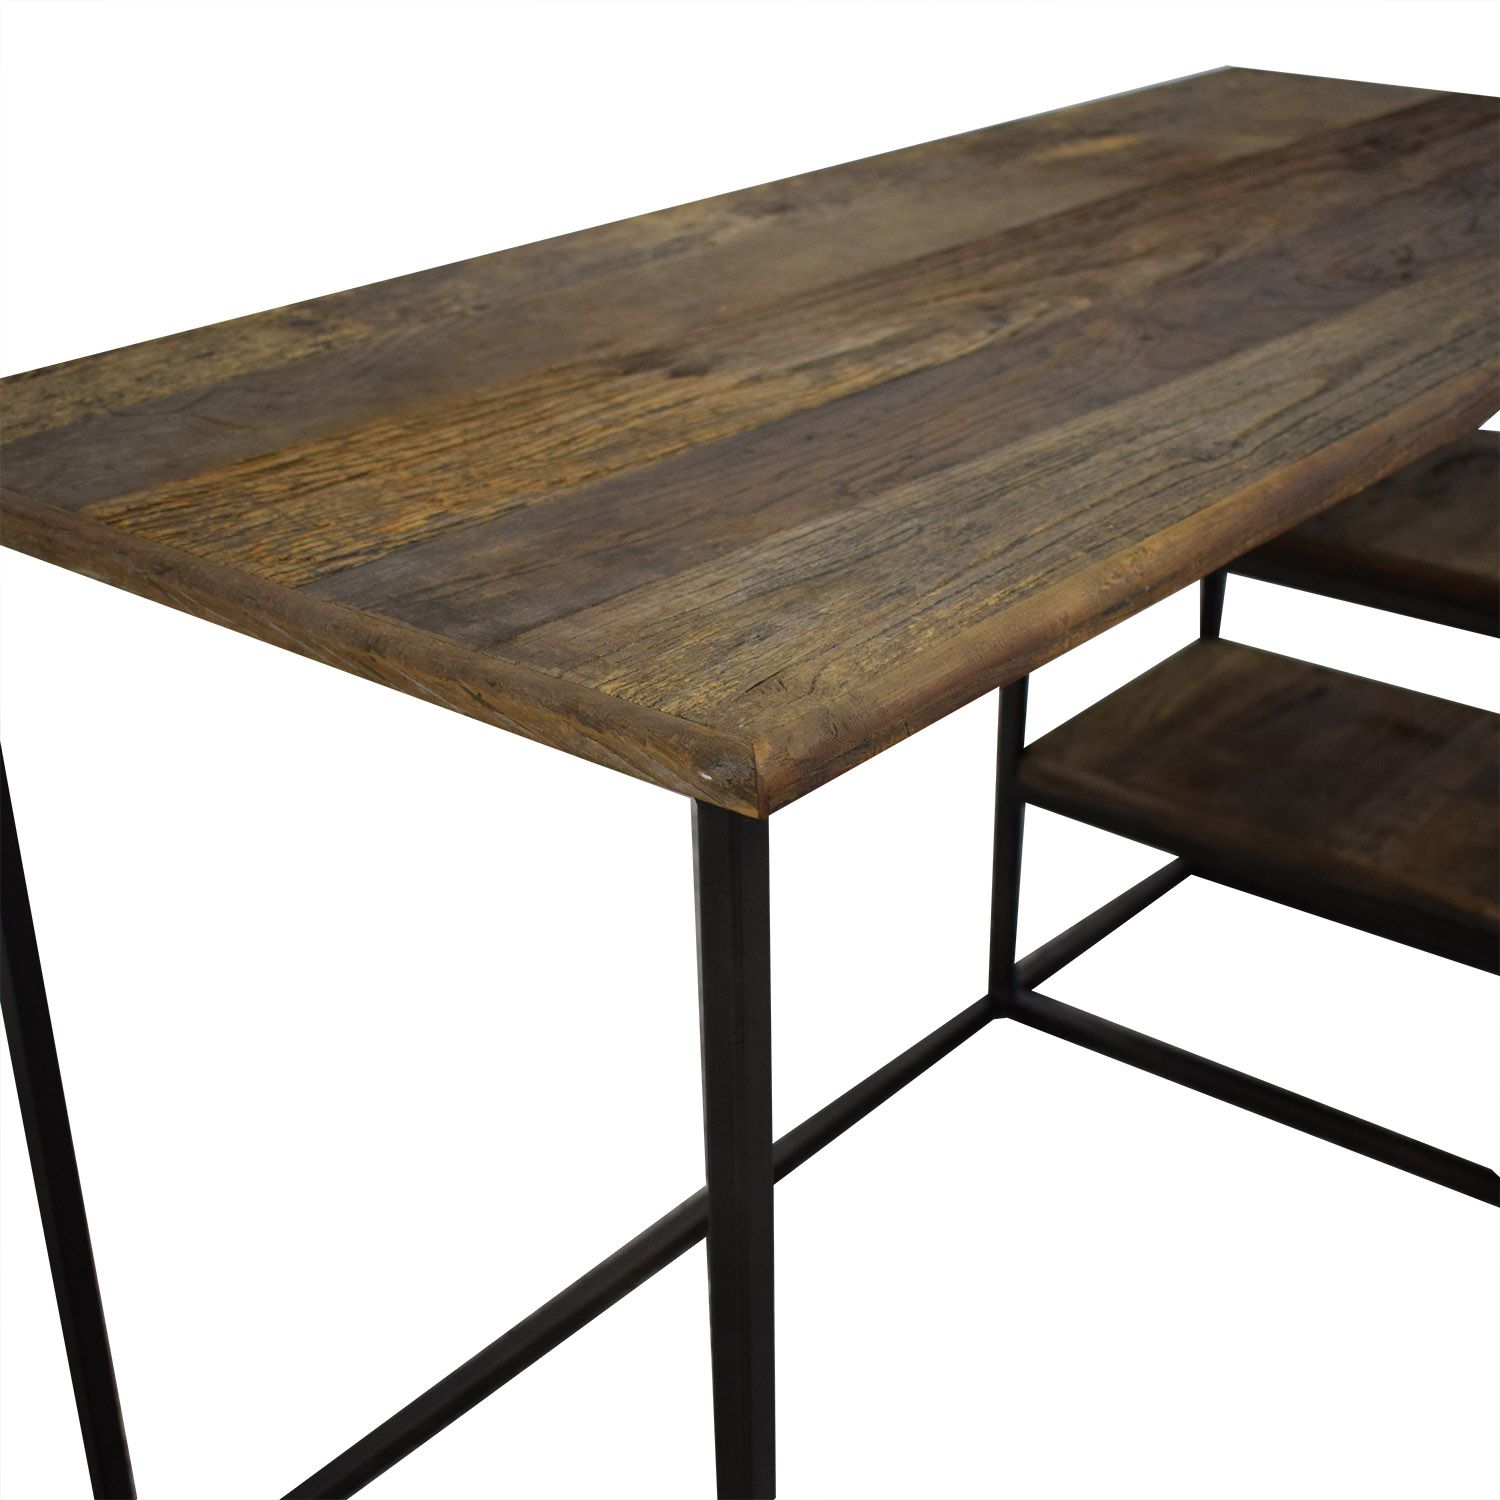 Restoration Hardware Restoration Hardware Fulton Desk brown